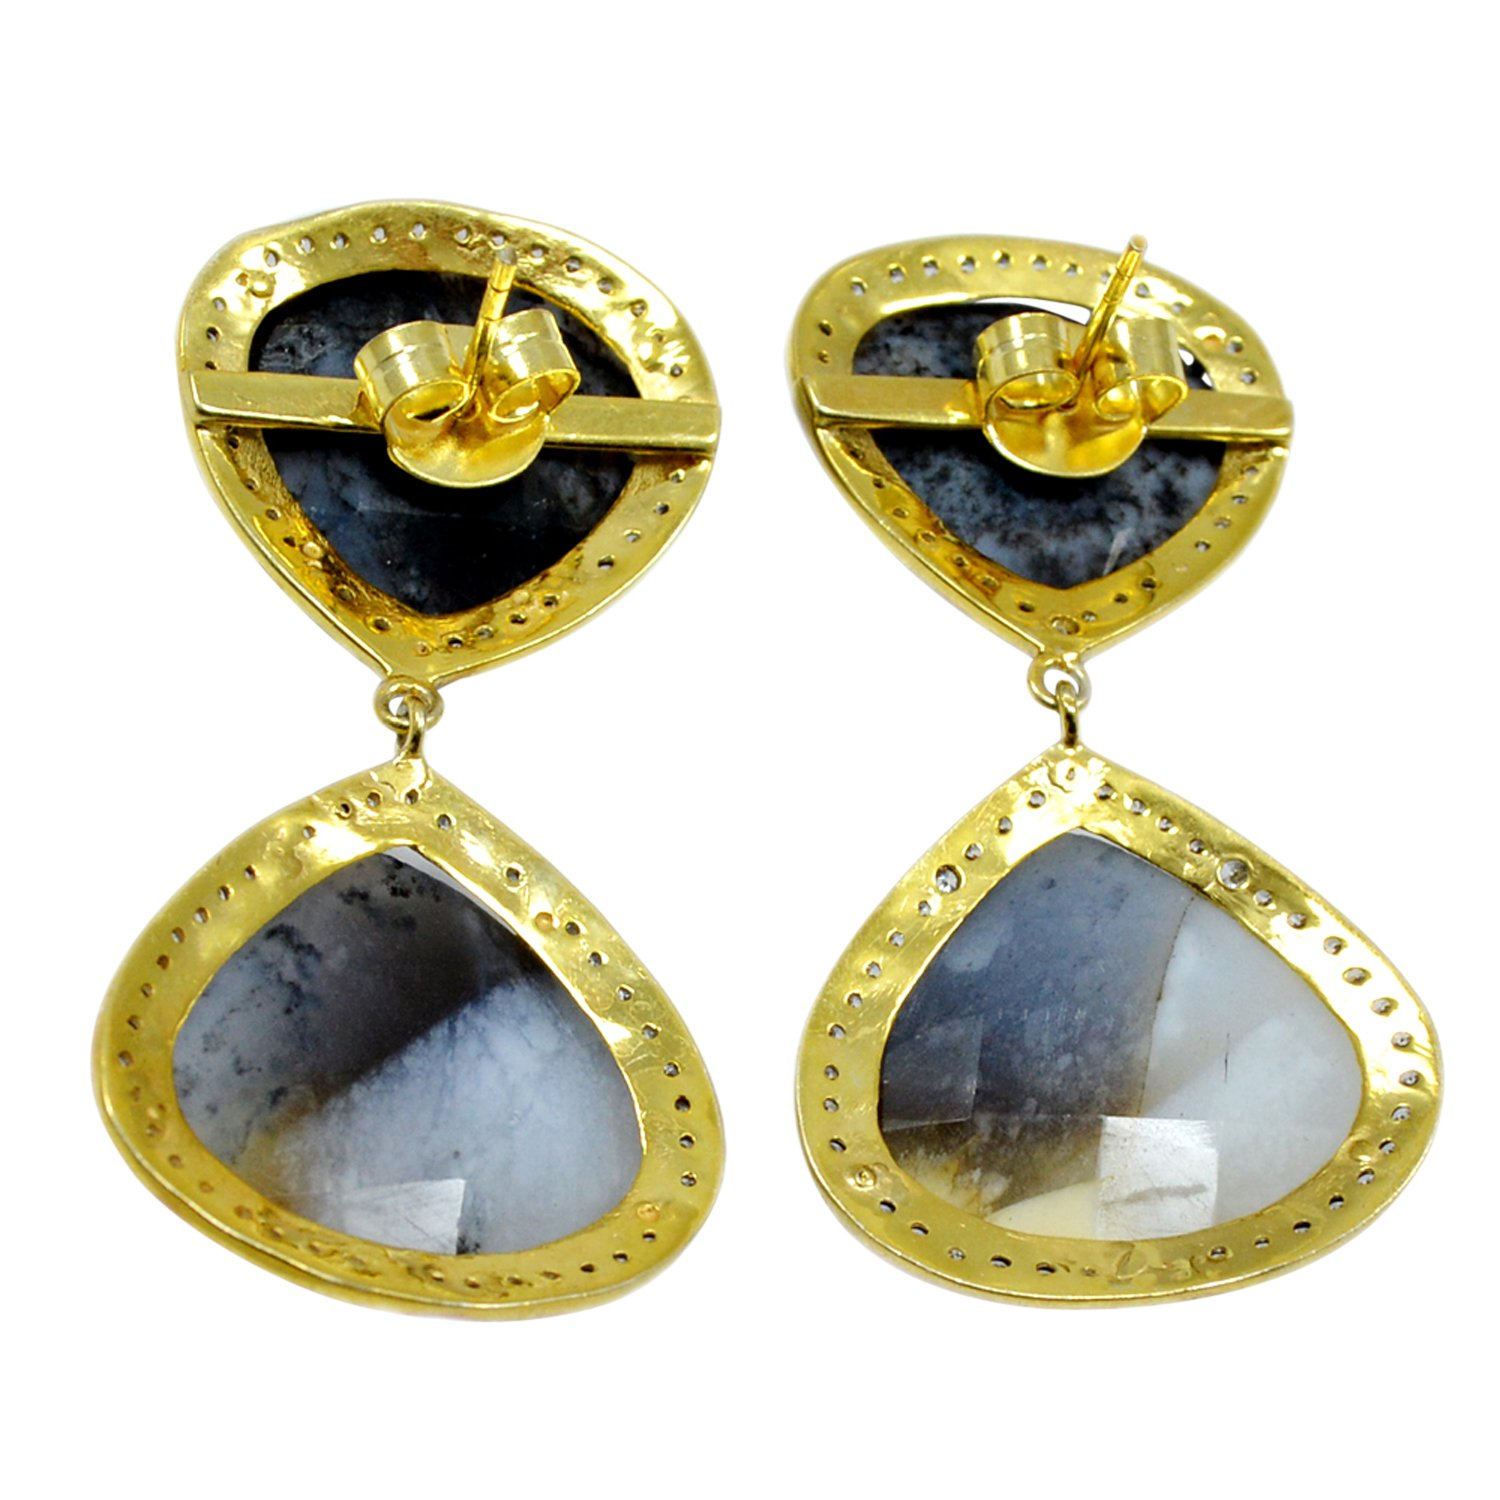 Handmade Jewelry Manufacturer Pear Shape Dendritic Agate /& Cubic Zircon 925 Sterling Silver Yellow vermeil Earring Jaipur Rajasthan India